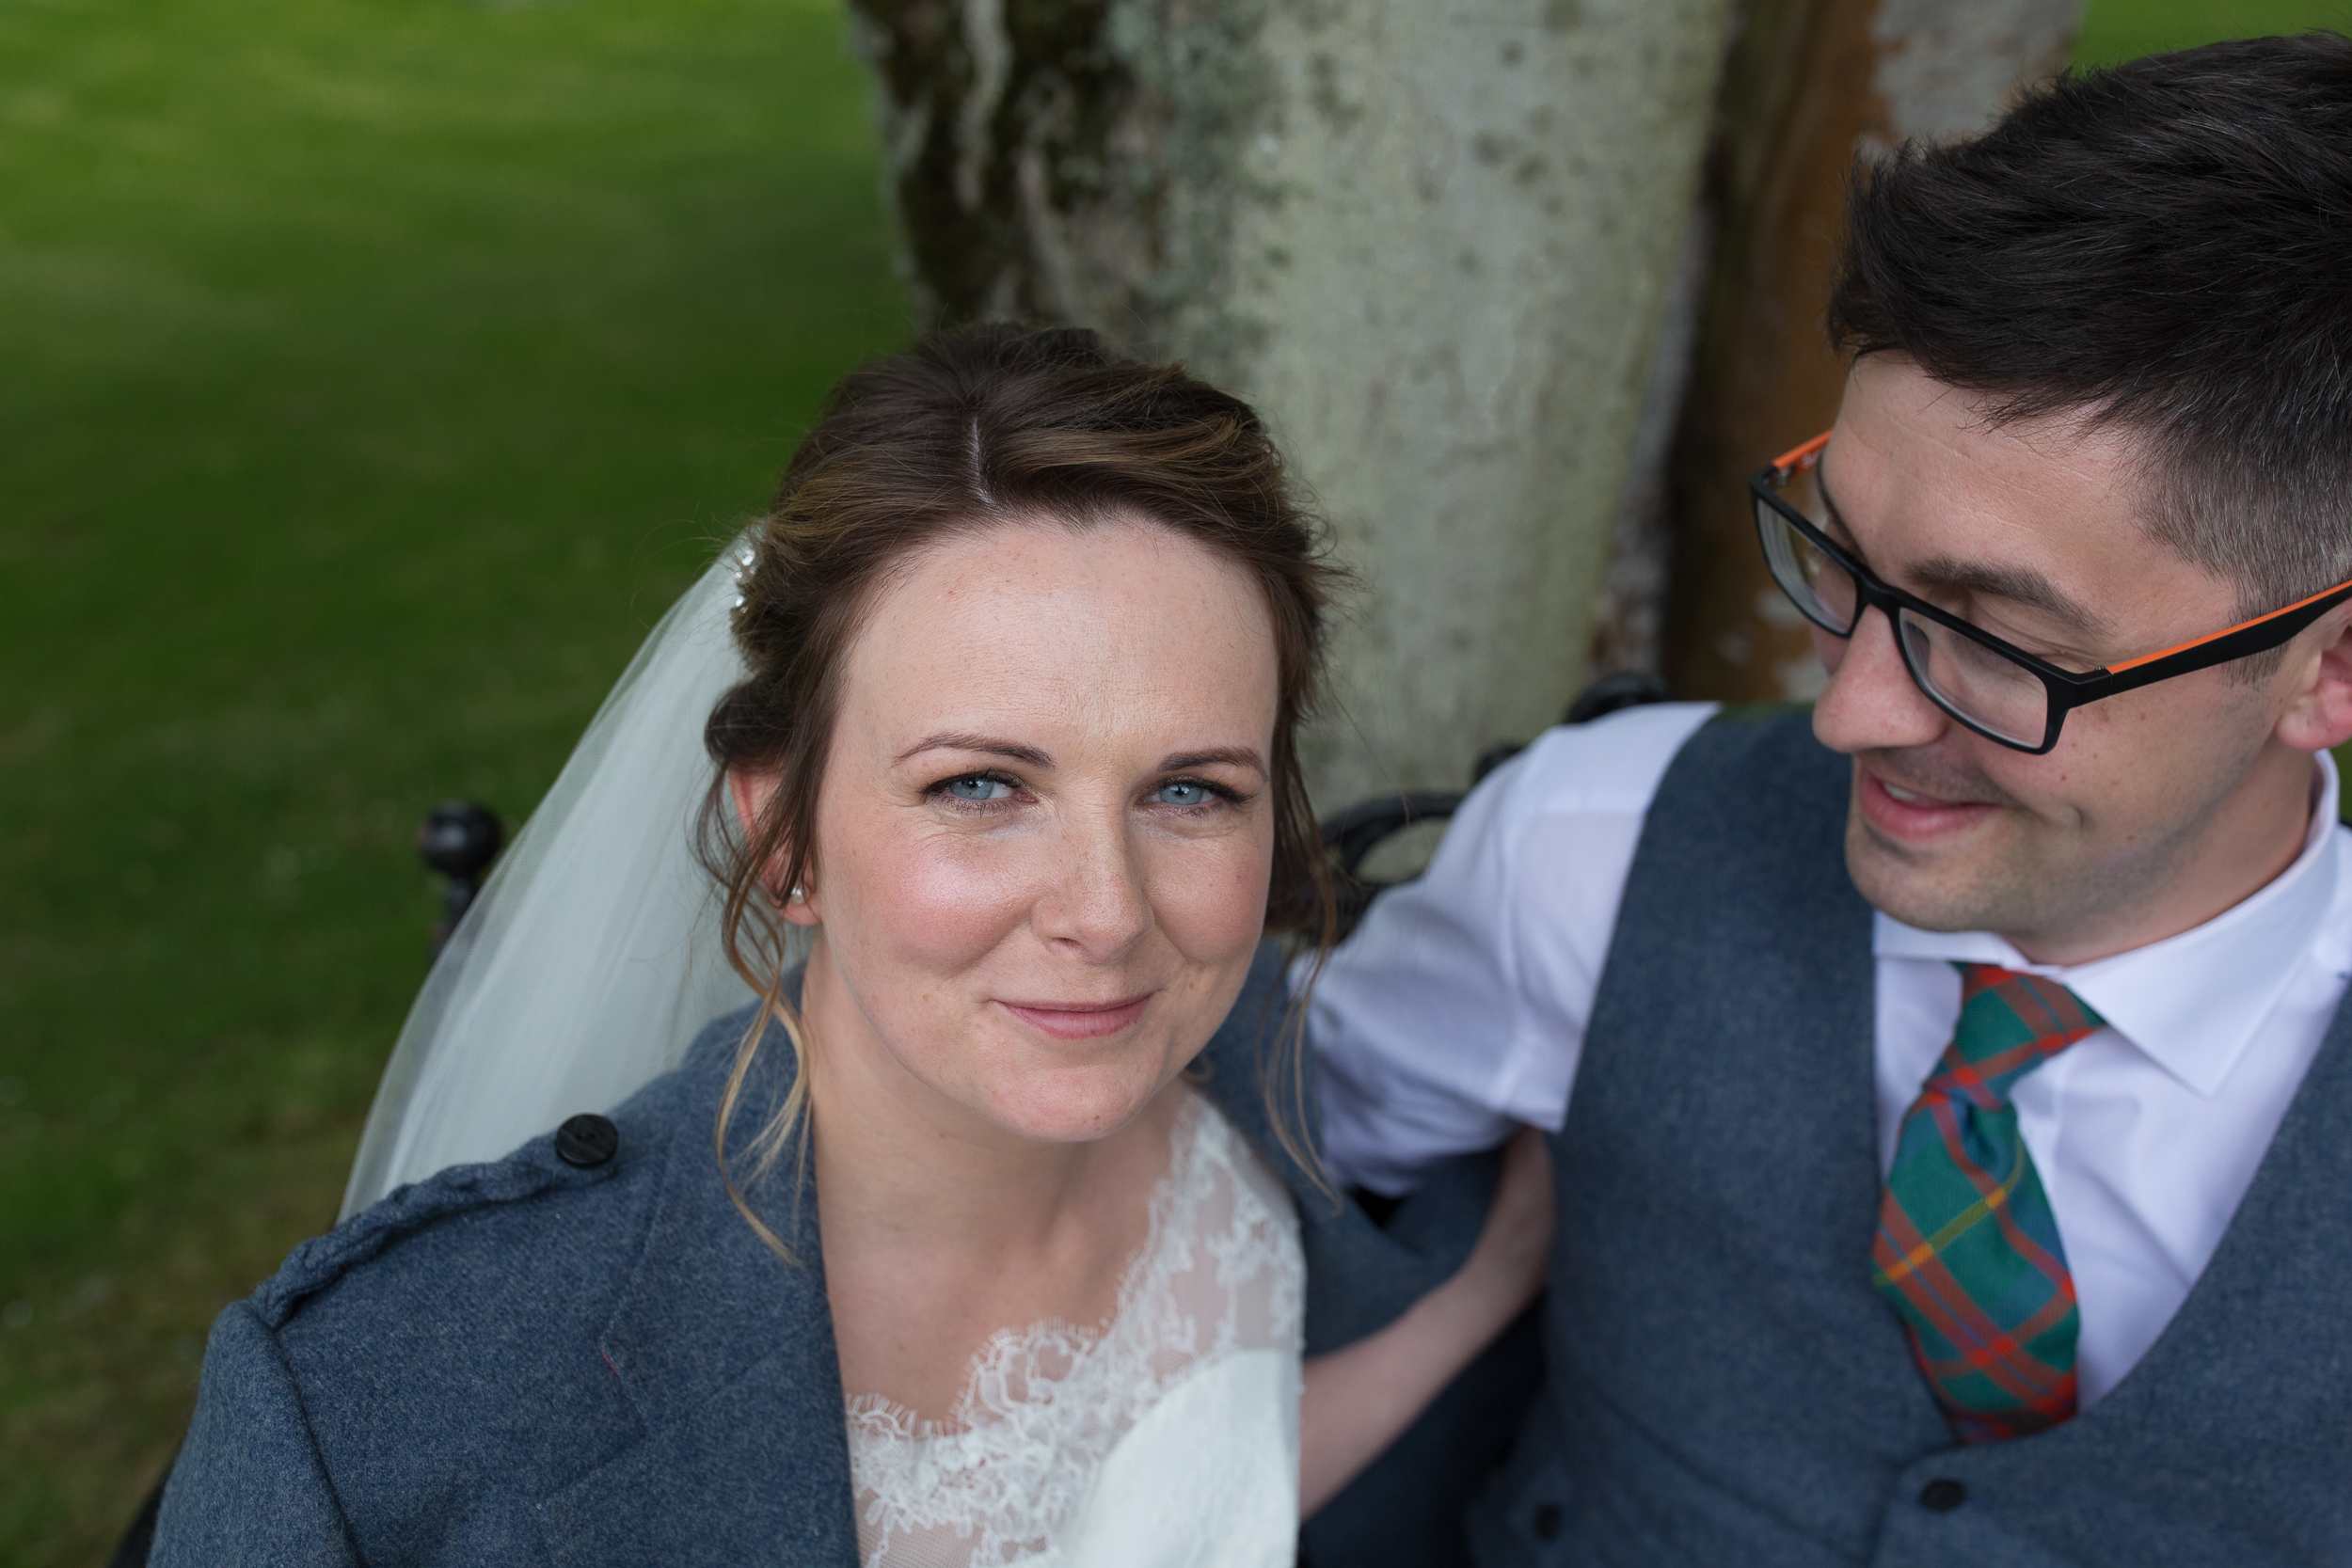 Aberdeen wedding photographers, Aberdeen wedding photography, vivienne Elizabeth photography, pittodrie house